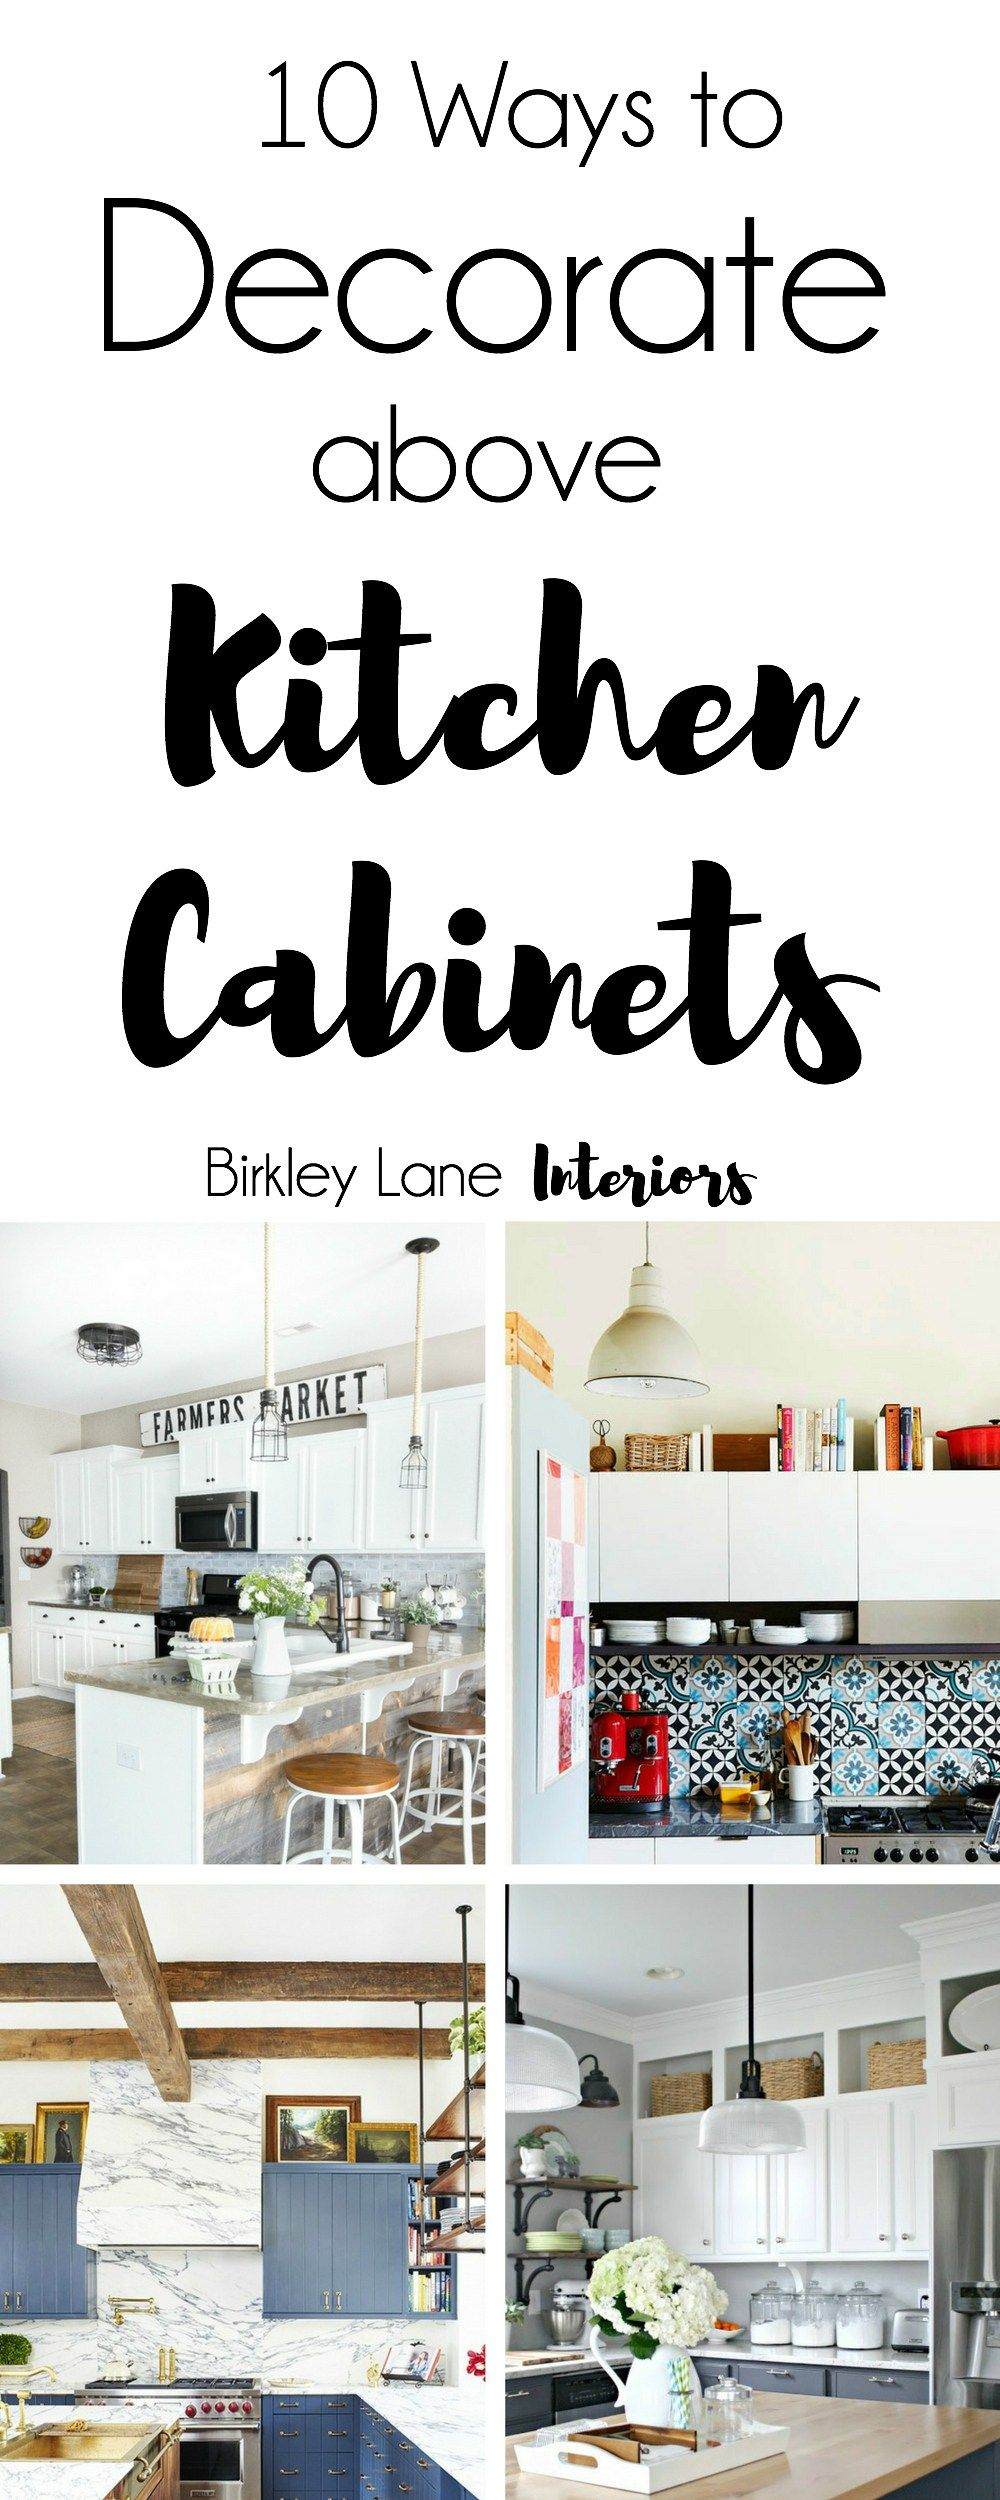 Discover 10 New Ways to Decorate Above Your Kitchen Cabinets - Above kitchen cabinets, Decorating above kitchen cabinets, Top kitchen cabinets, Kitchen cabinets decor, Diy kitchen decor, Cabinet decor - Click here for 10 amazing ideas to decorate above kitchen cabinets! No more awkward space and you'll love the way your kitchen looks afterwards!